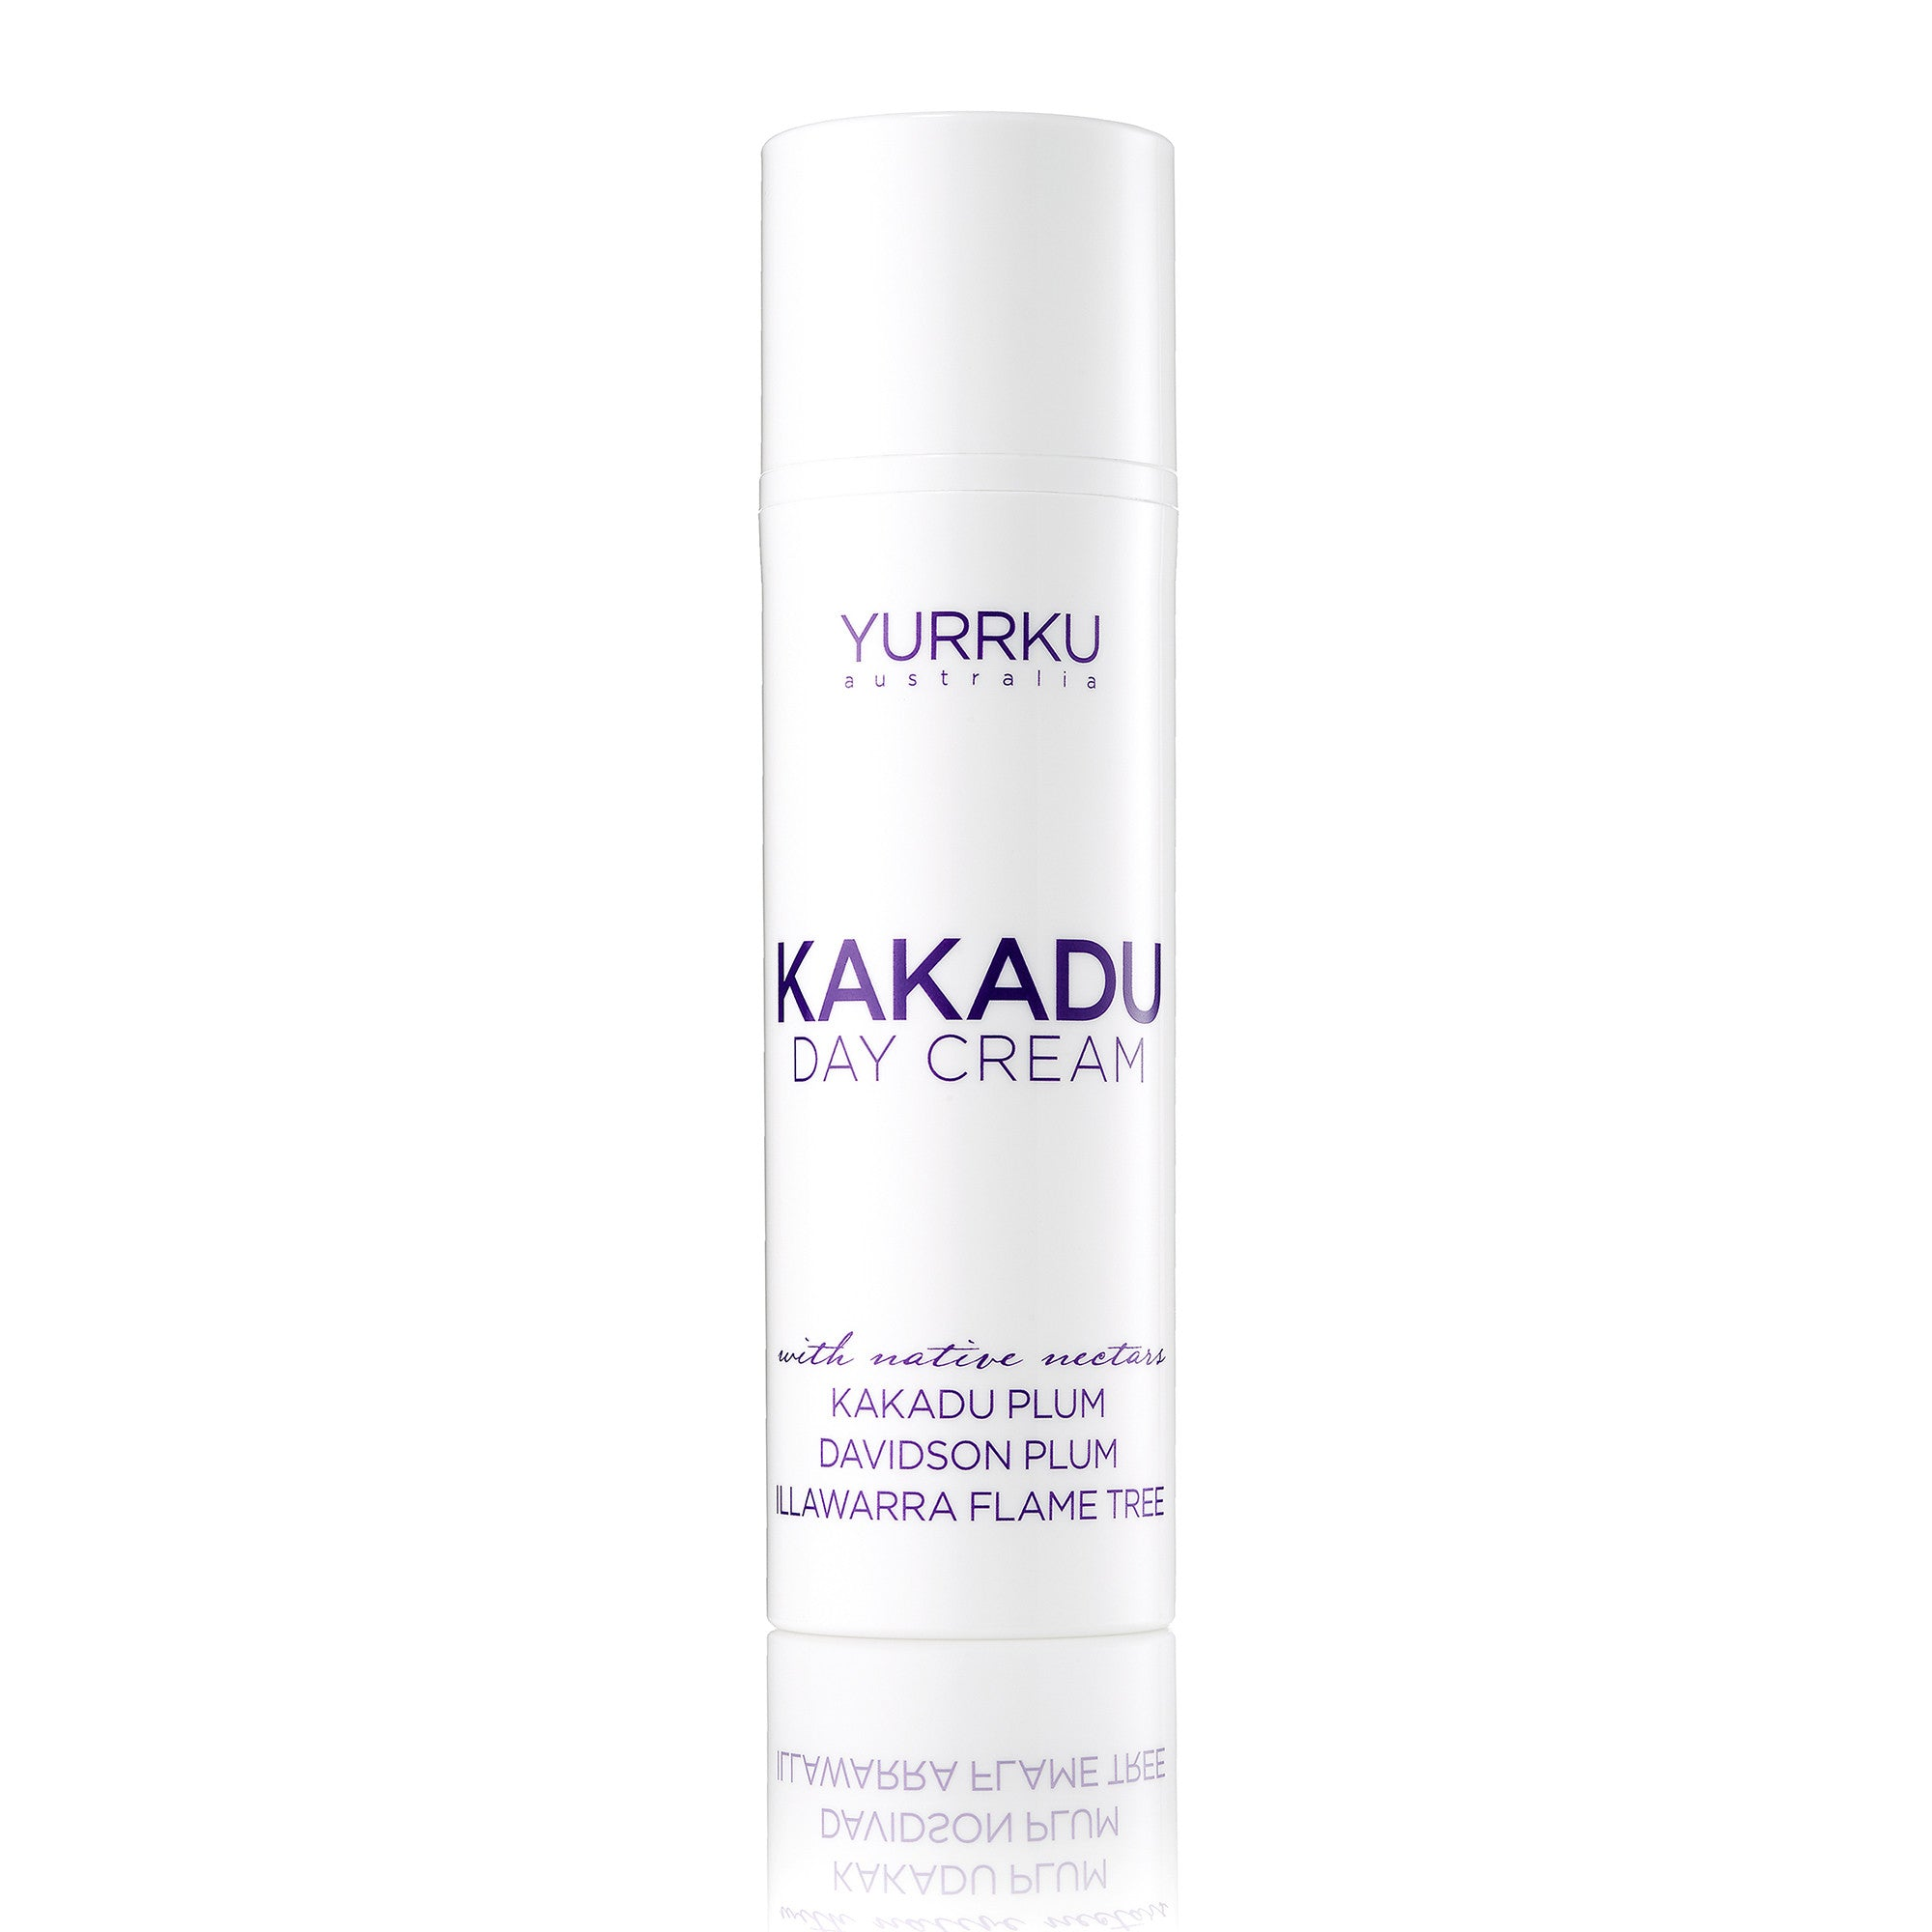 Yurrku - Kakadu Day Cream 50ml